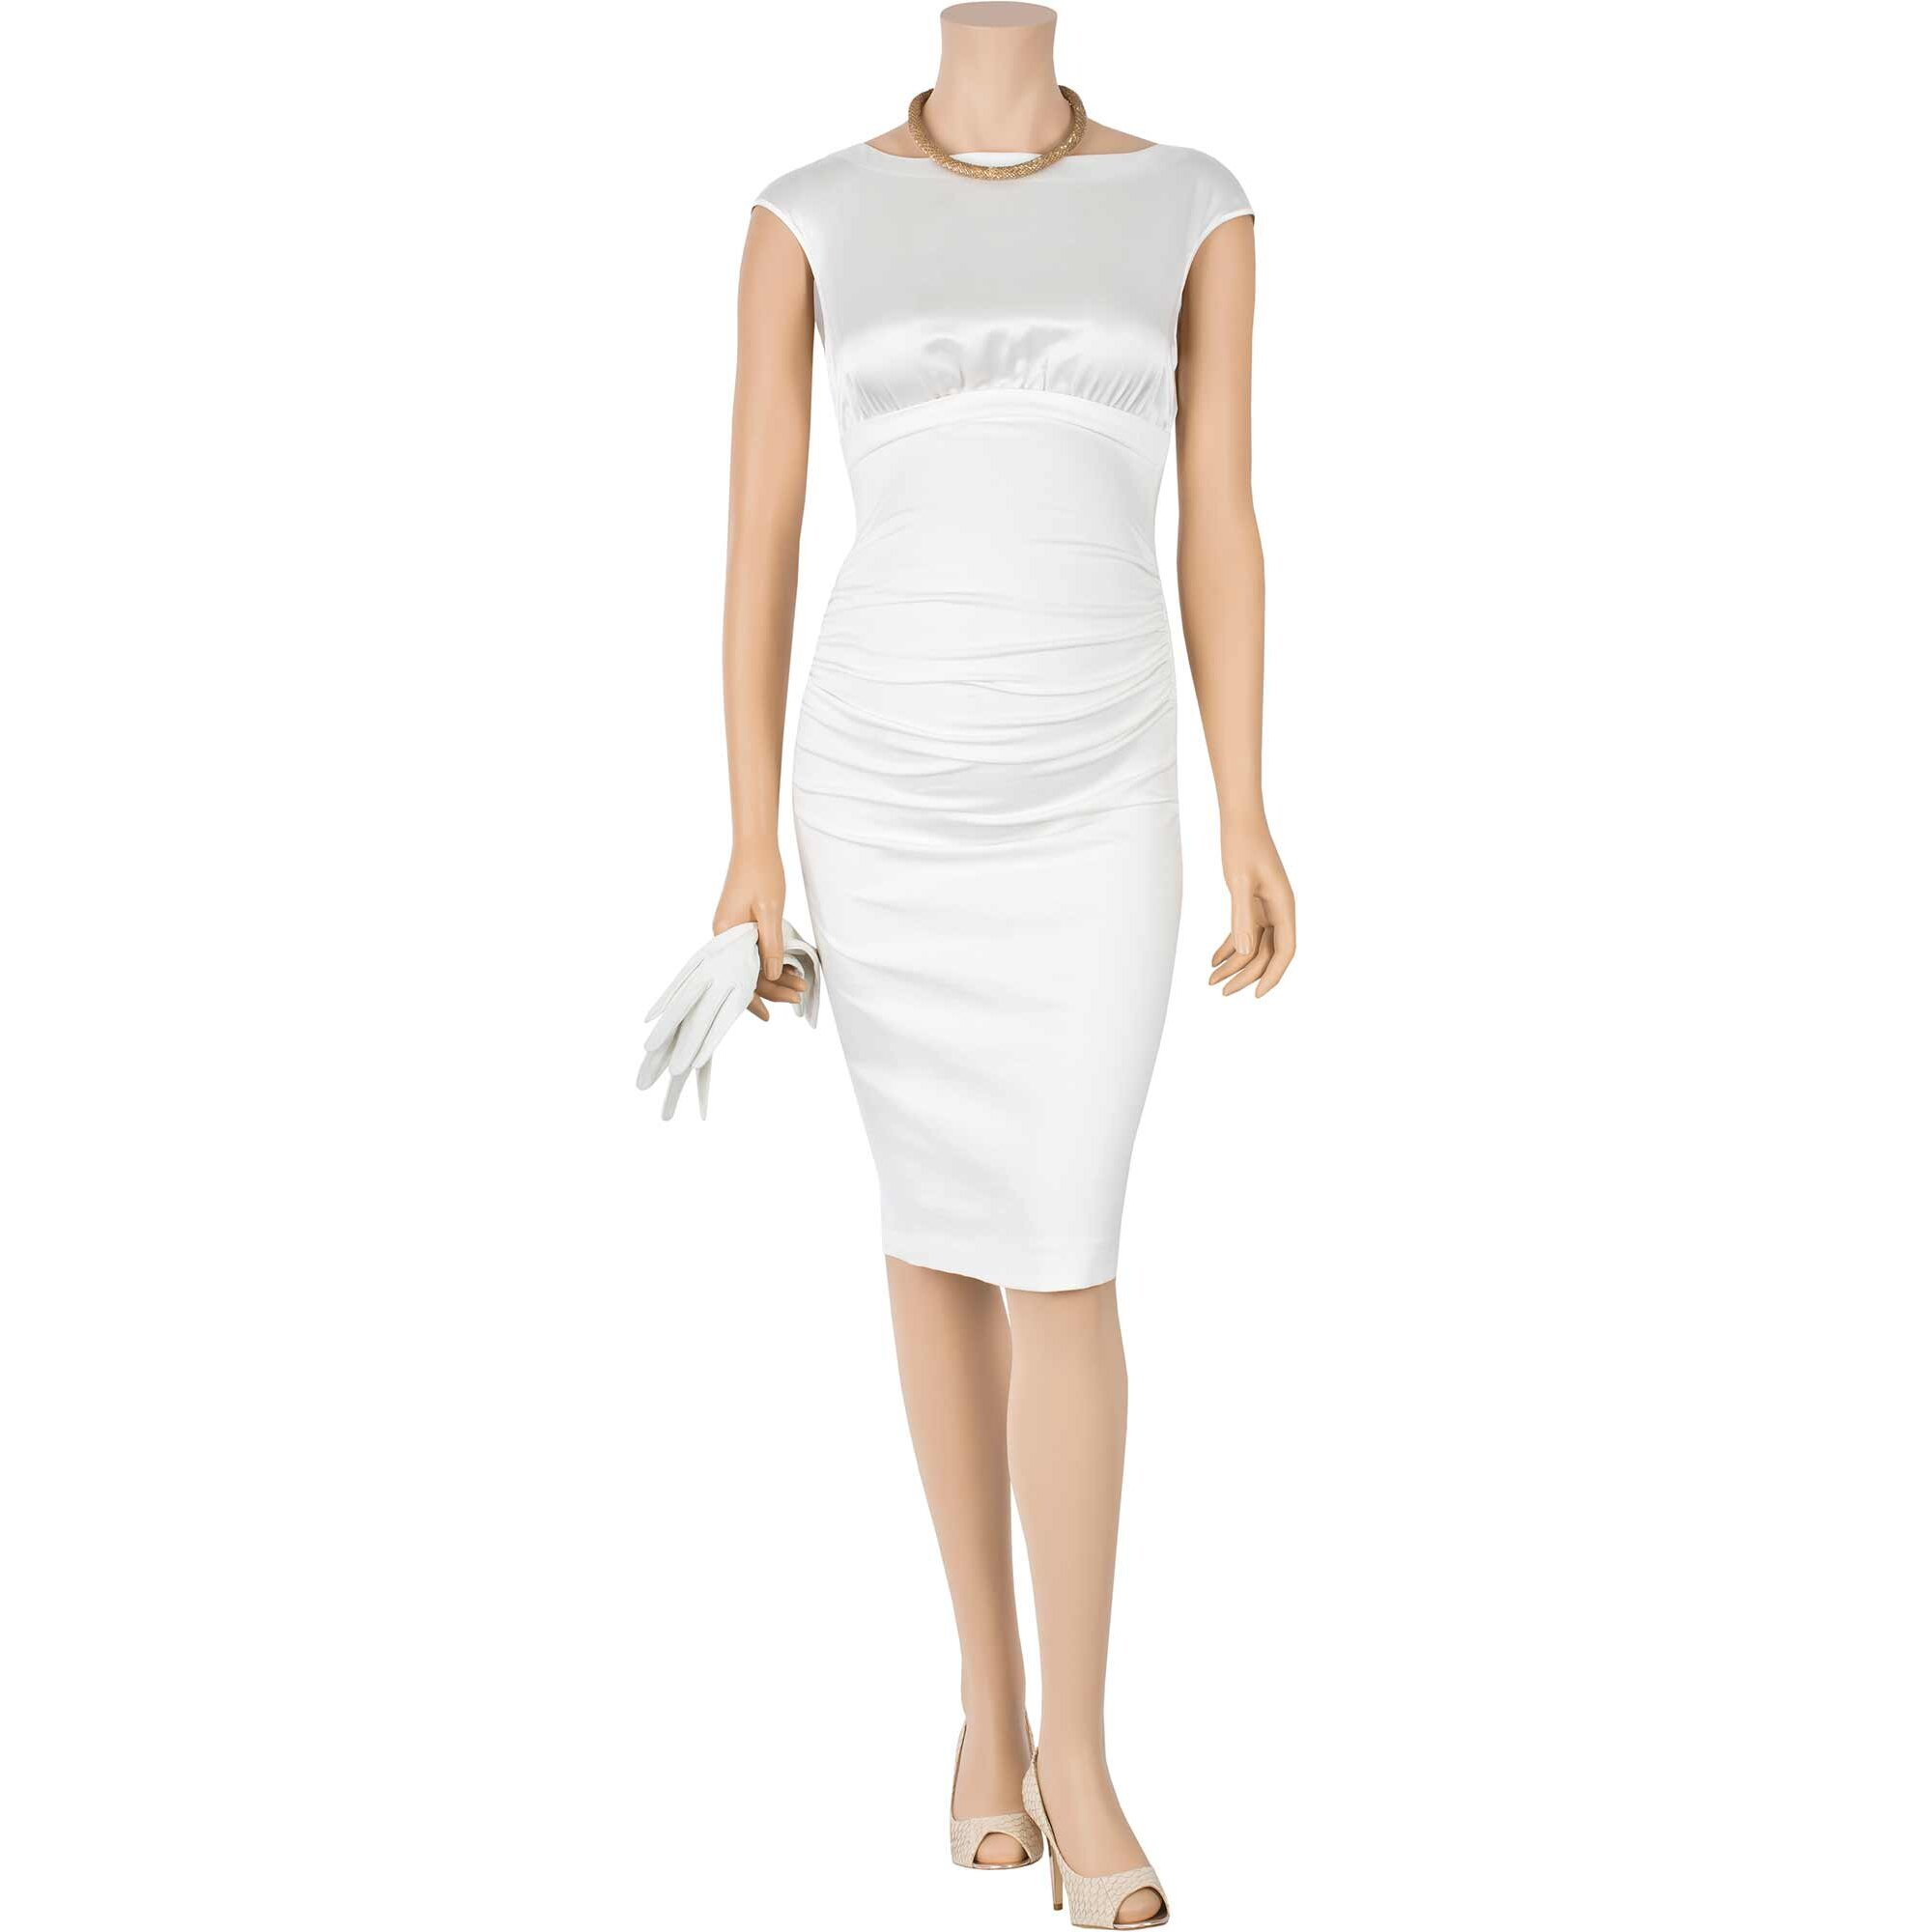 paulina-umstandsbrautkleid-almost-married, 259.00 EUR @ babywalz-de